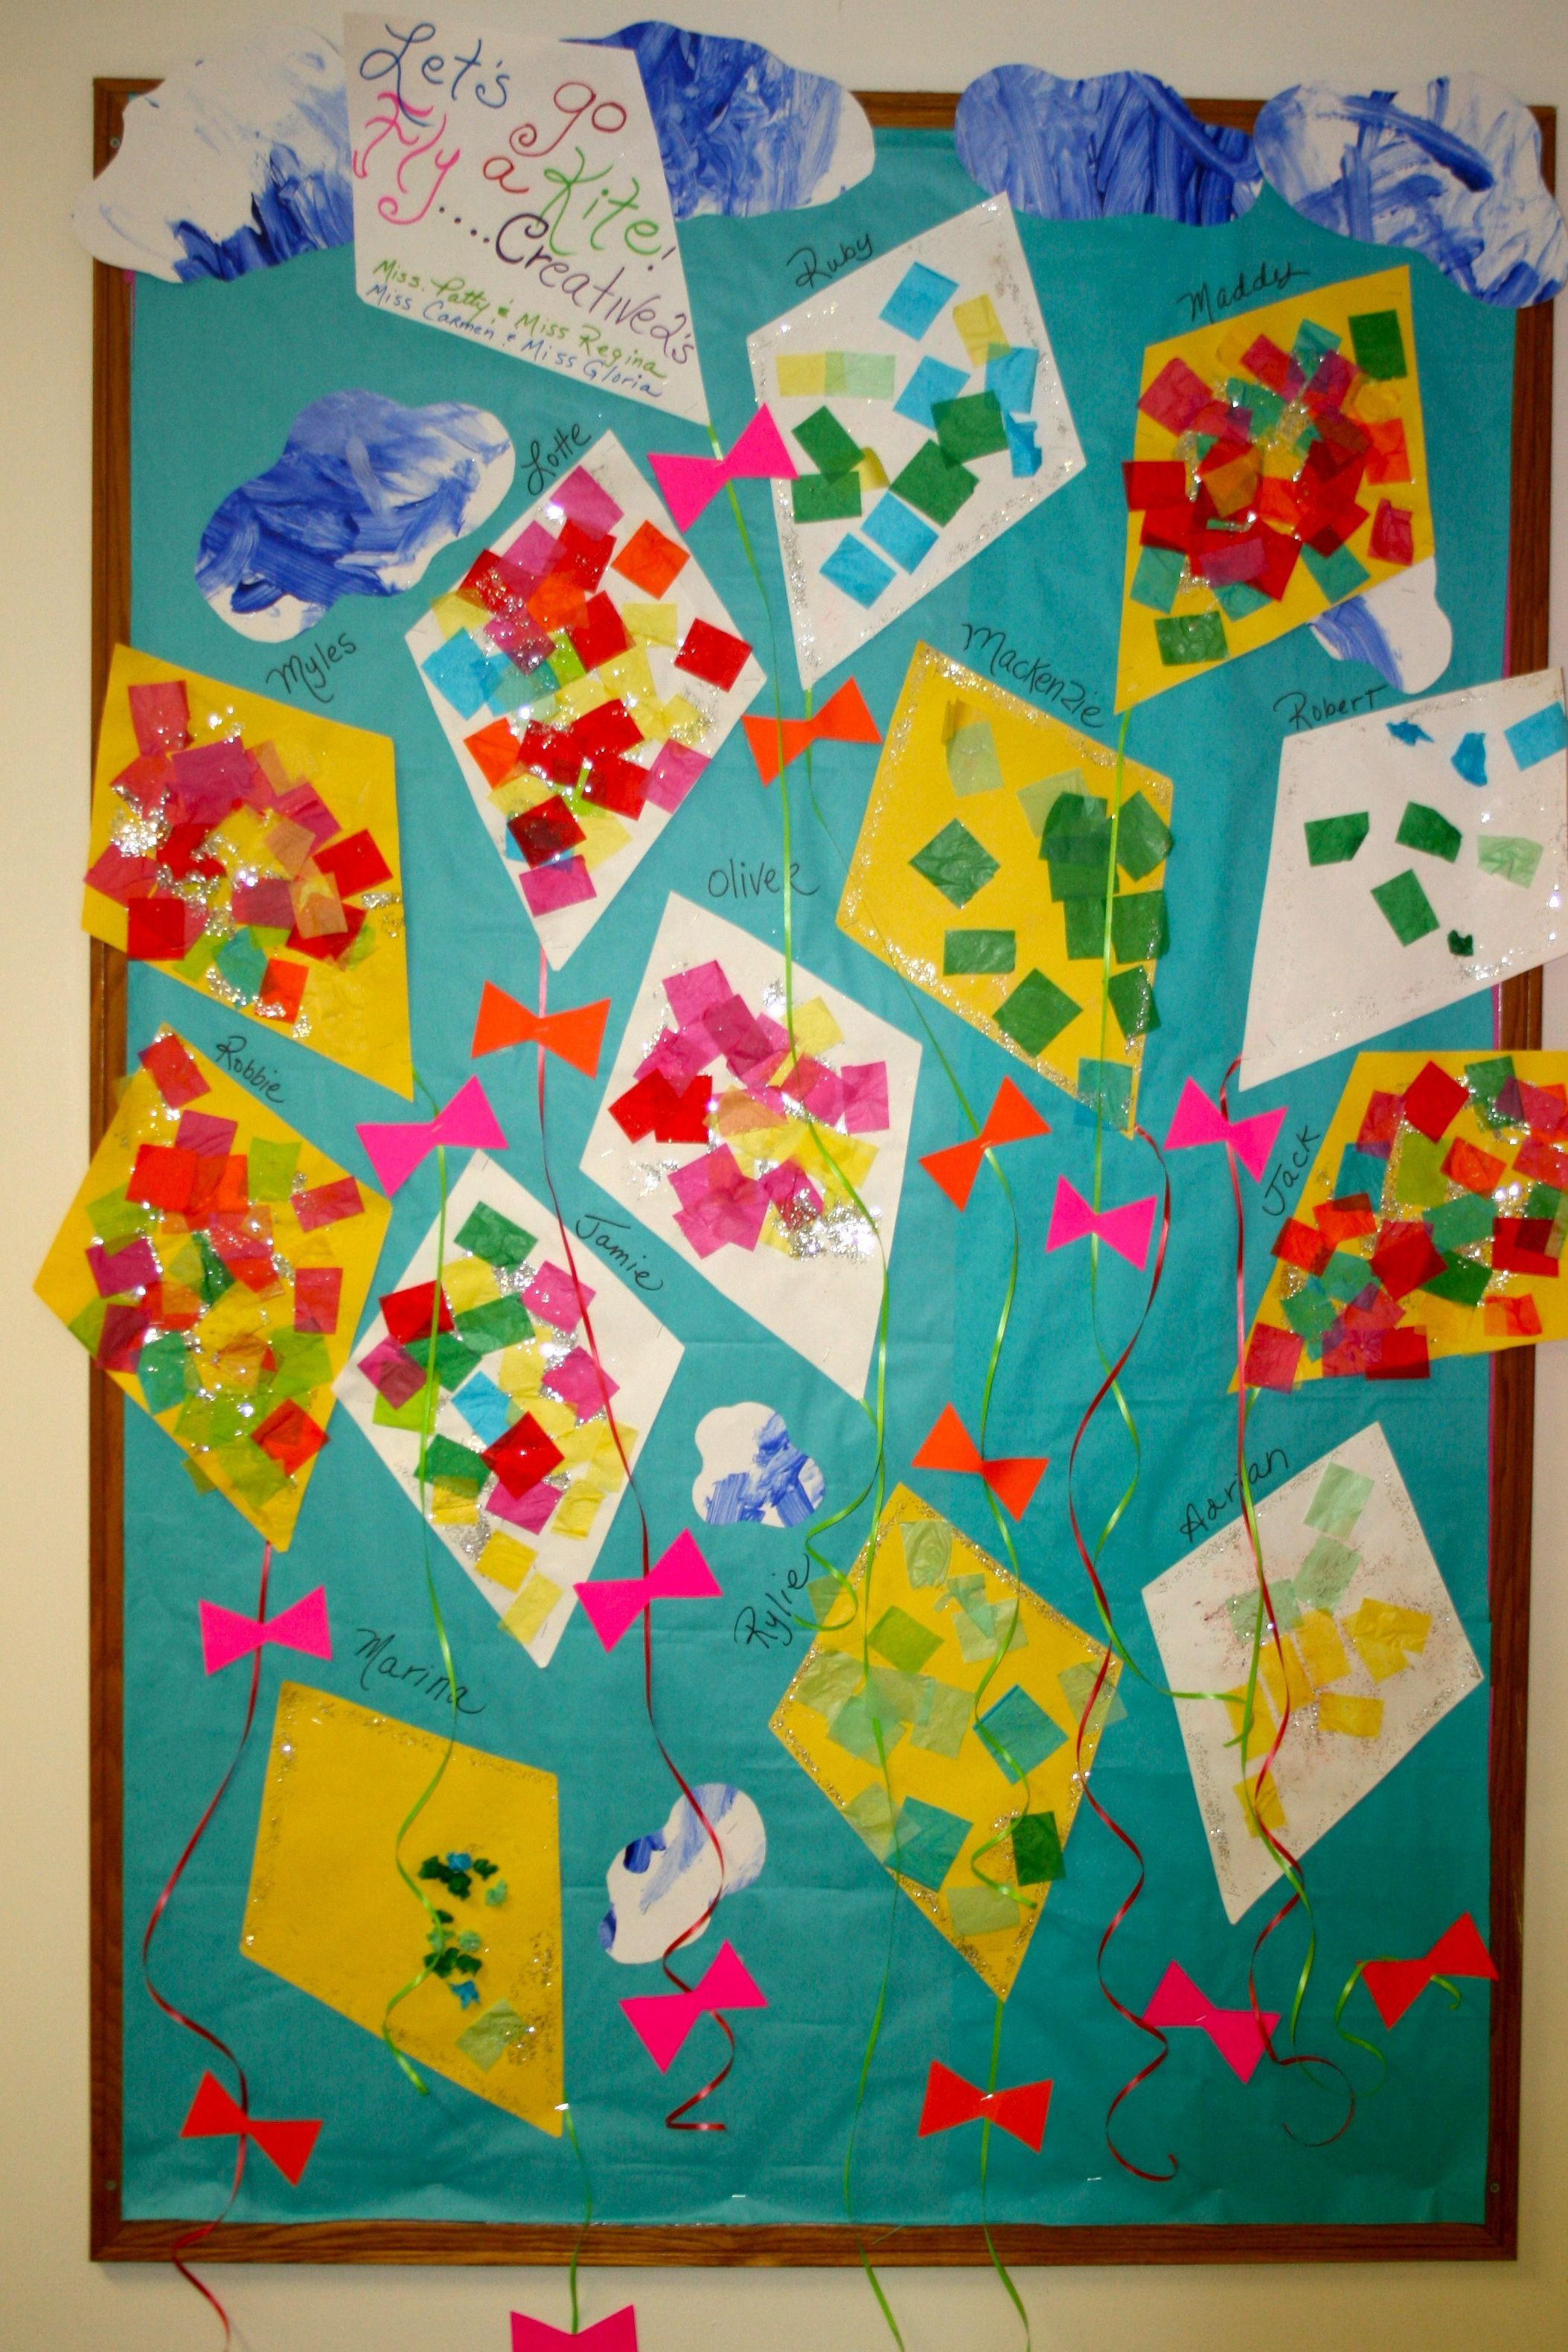 Paper Kite Craft Just Glue Colored Tissue Paper Onto The Kites